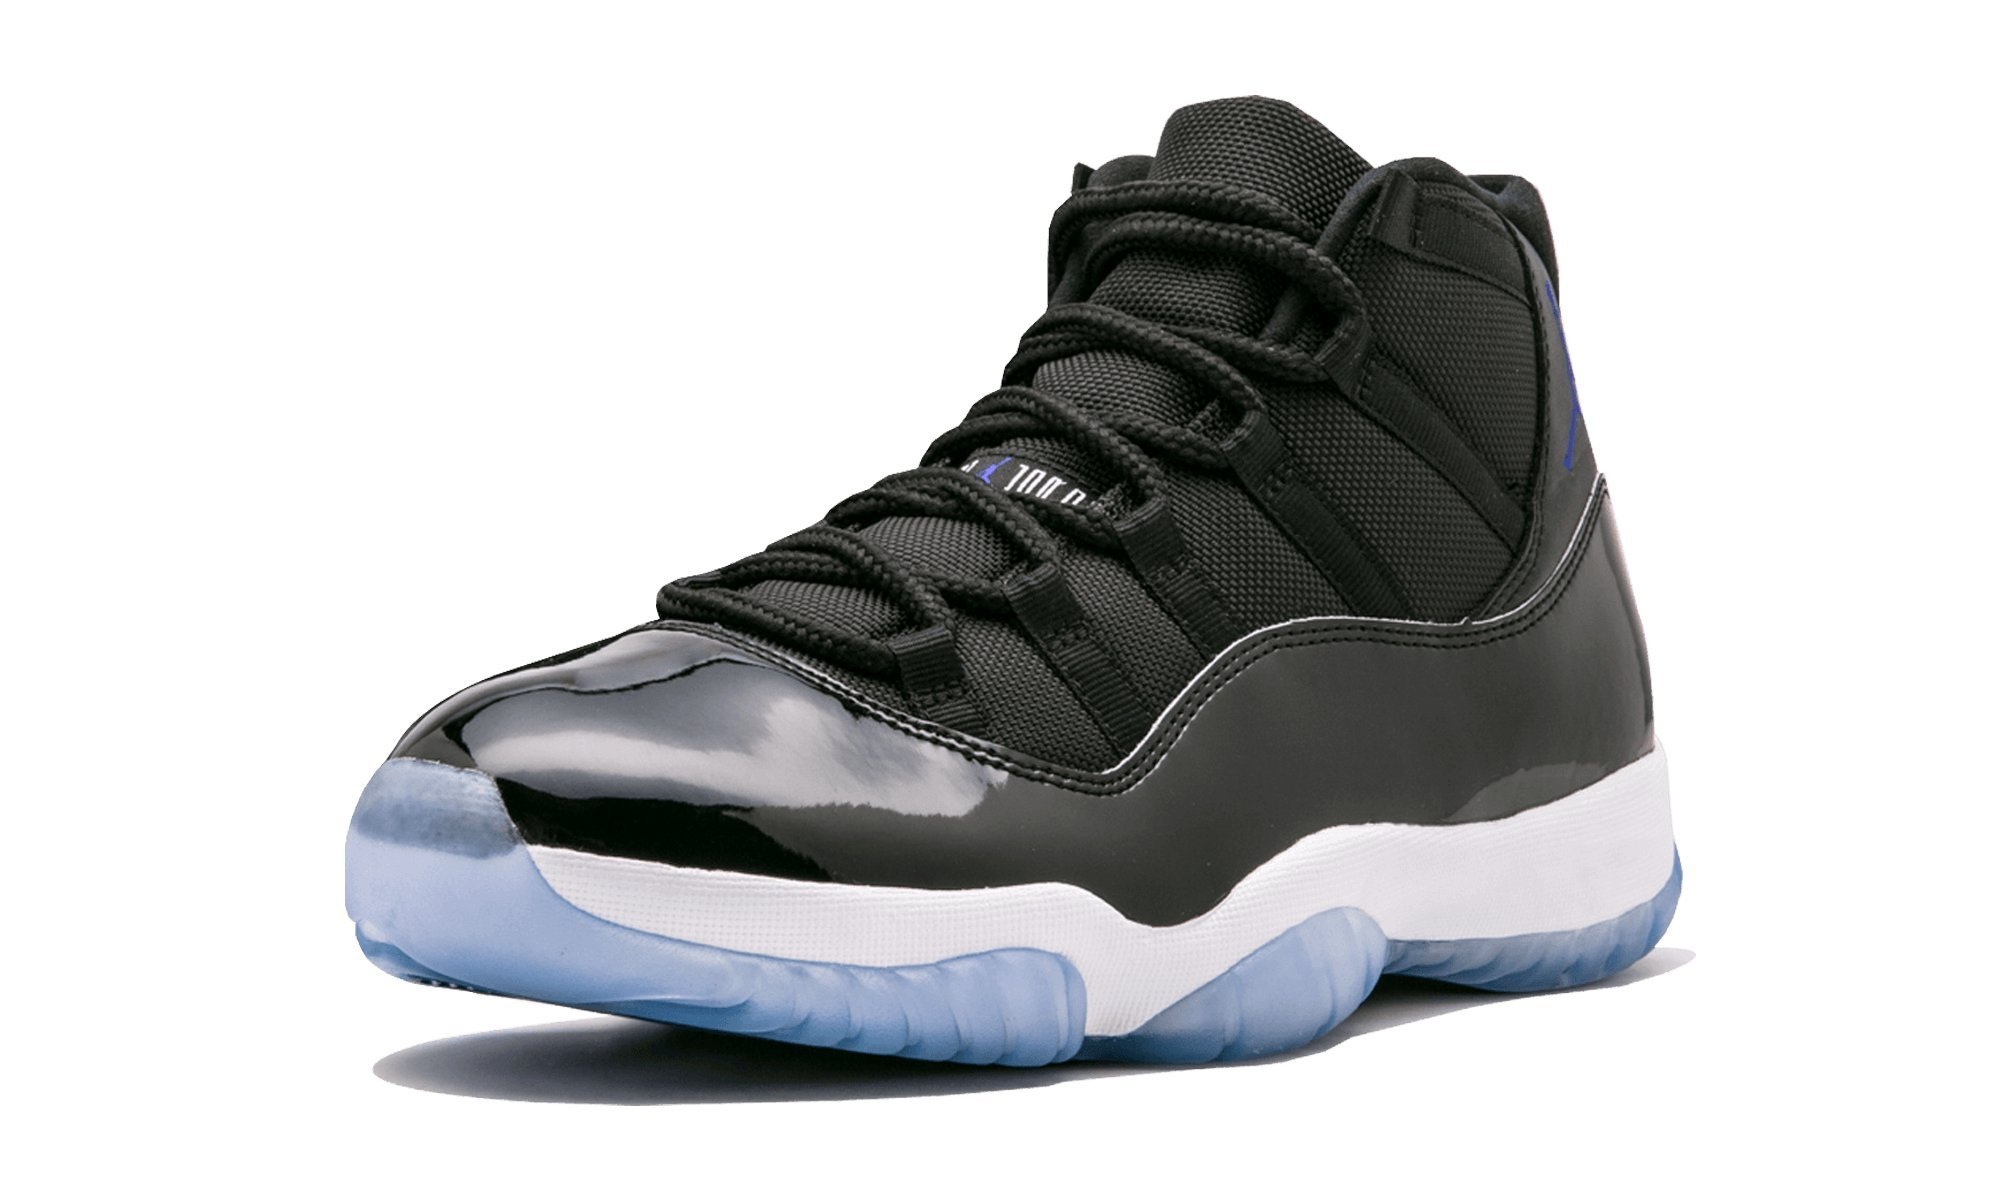 buy online 9a0e4 d1211 Galleon - Air Jordan 11 Retro